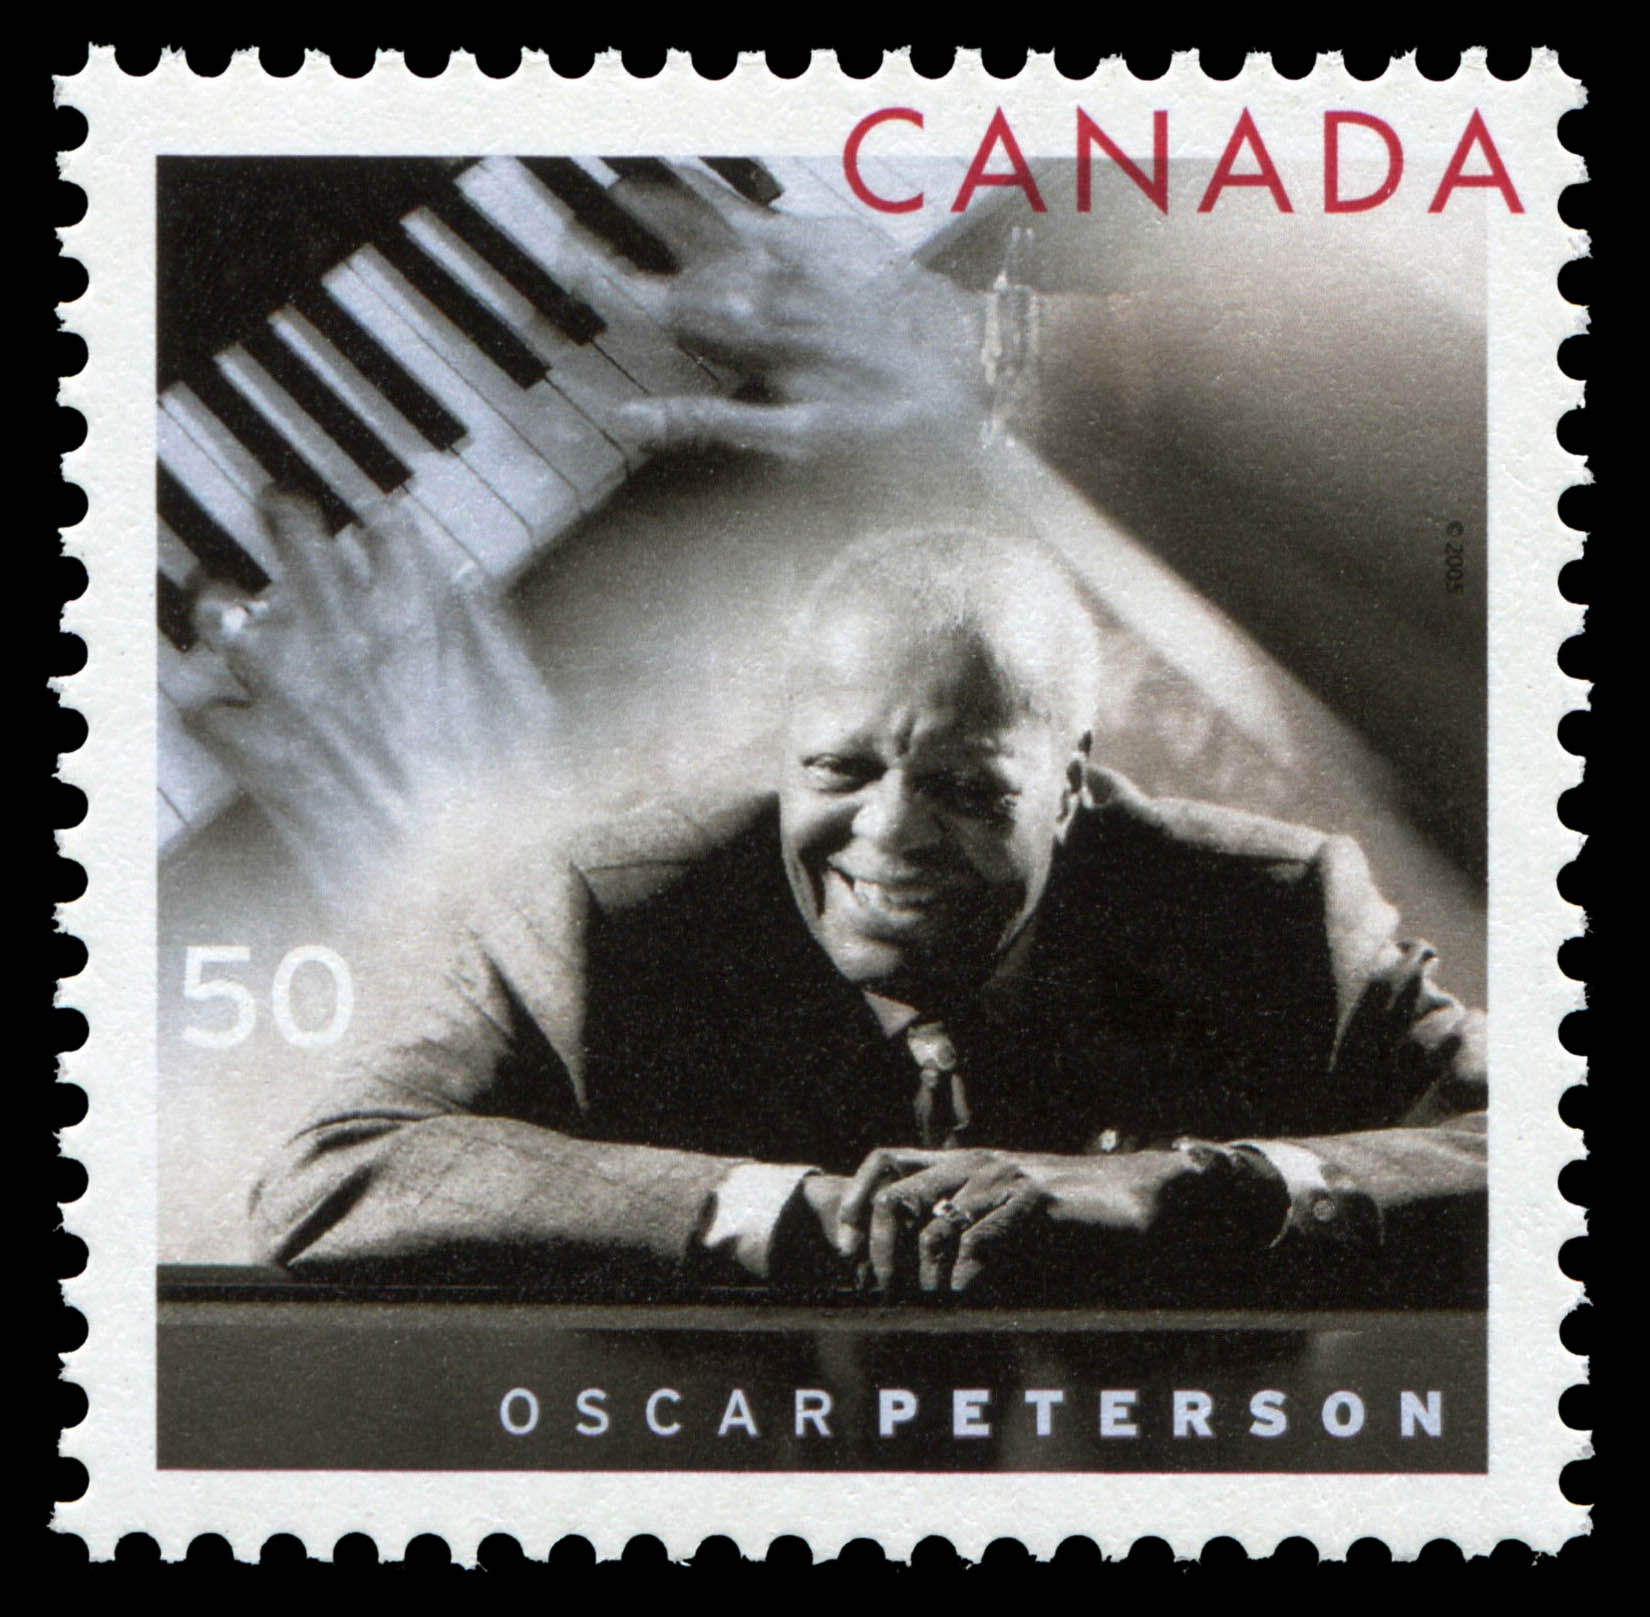 Oscar Peterson Canada Postage Stamp